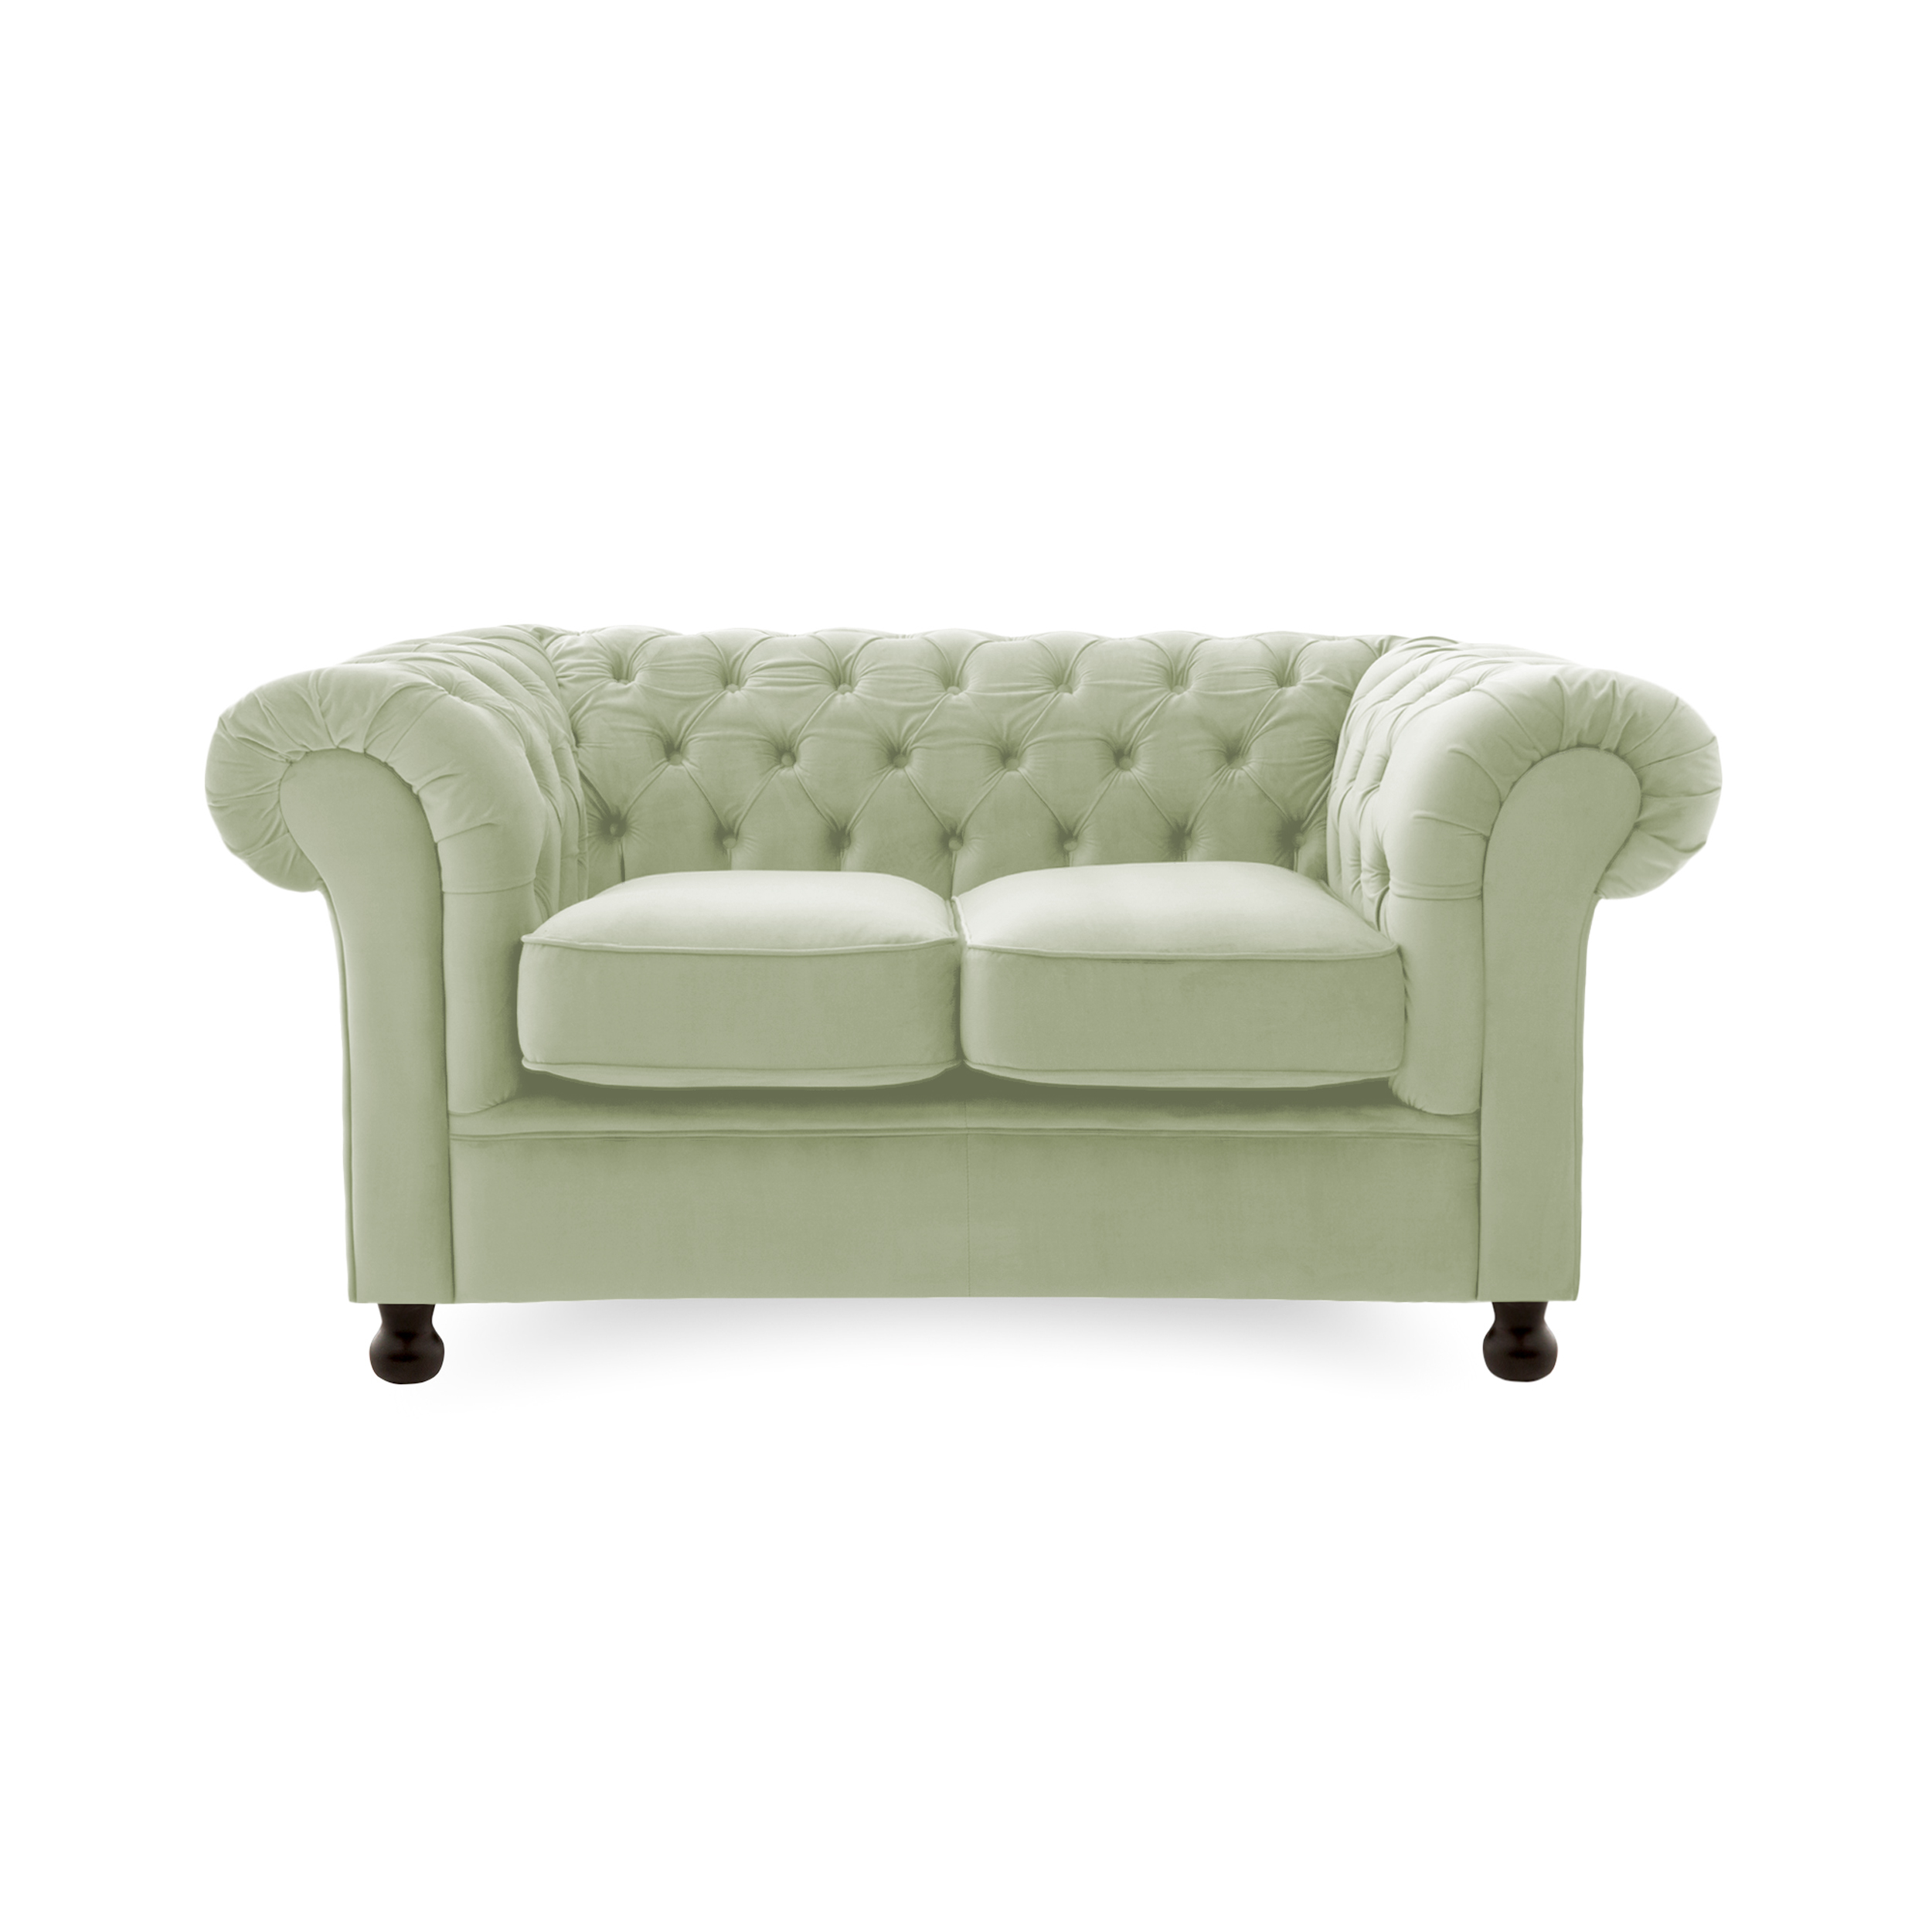 Canapea Fixa 2 locuri Chesterfield Apple Green